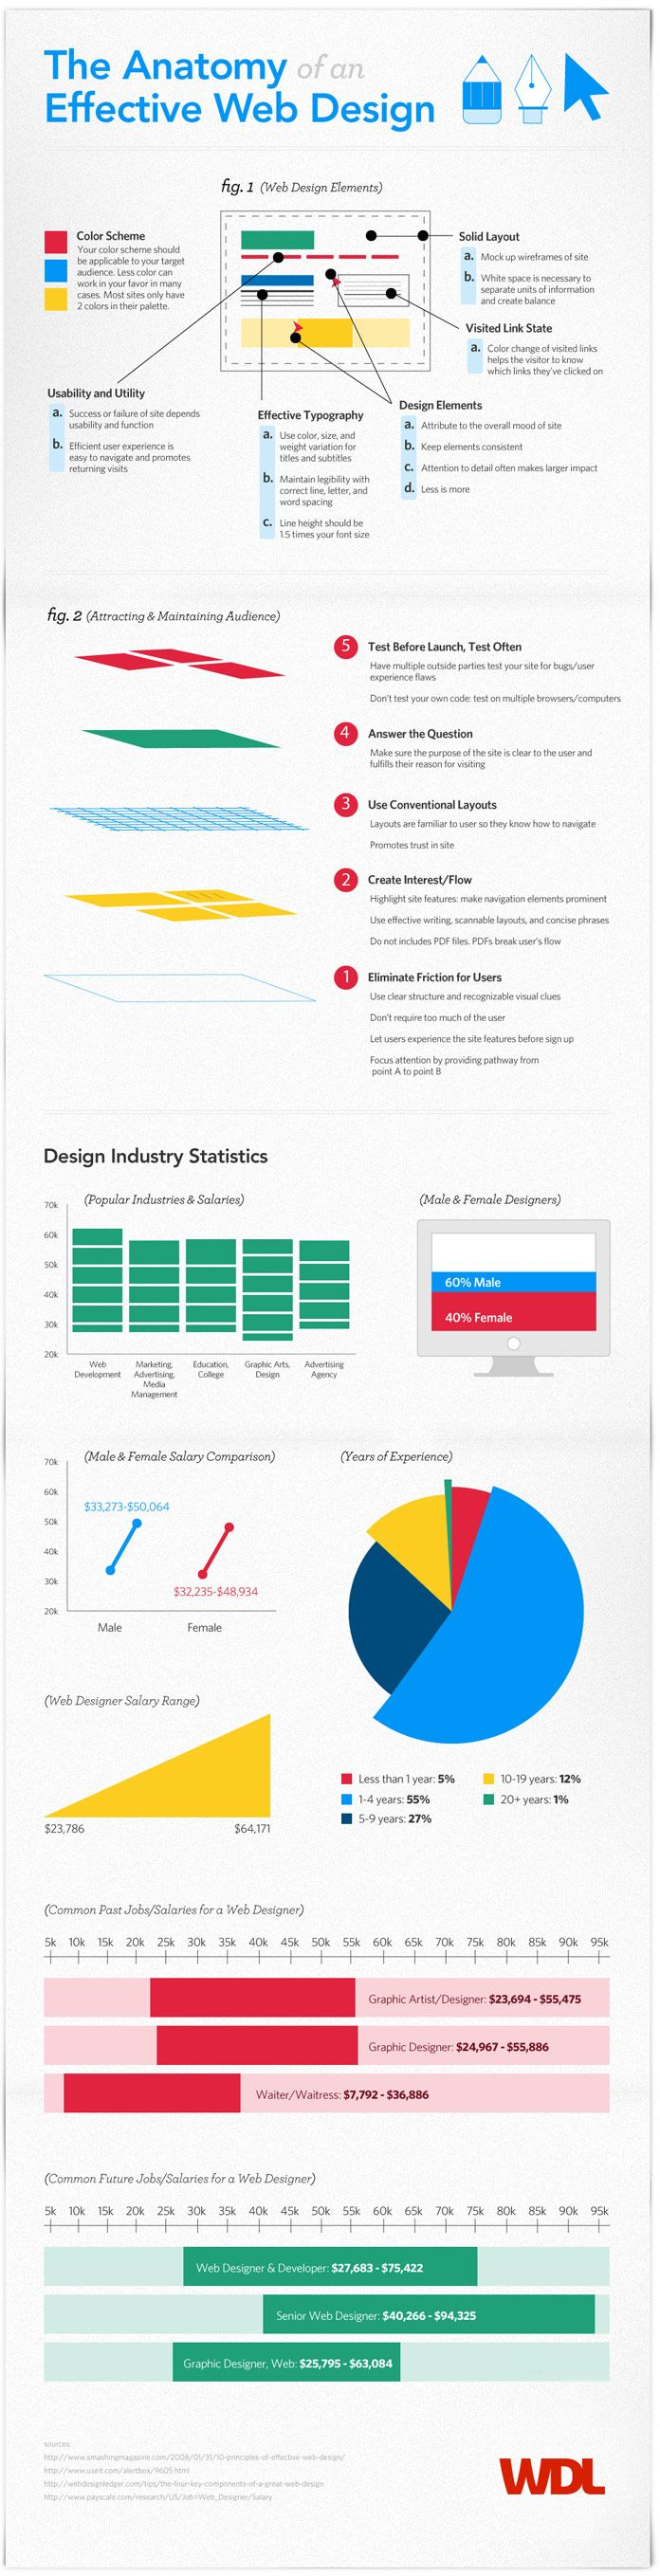 The anatomy of an effective web design #infographic